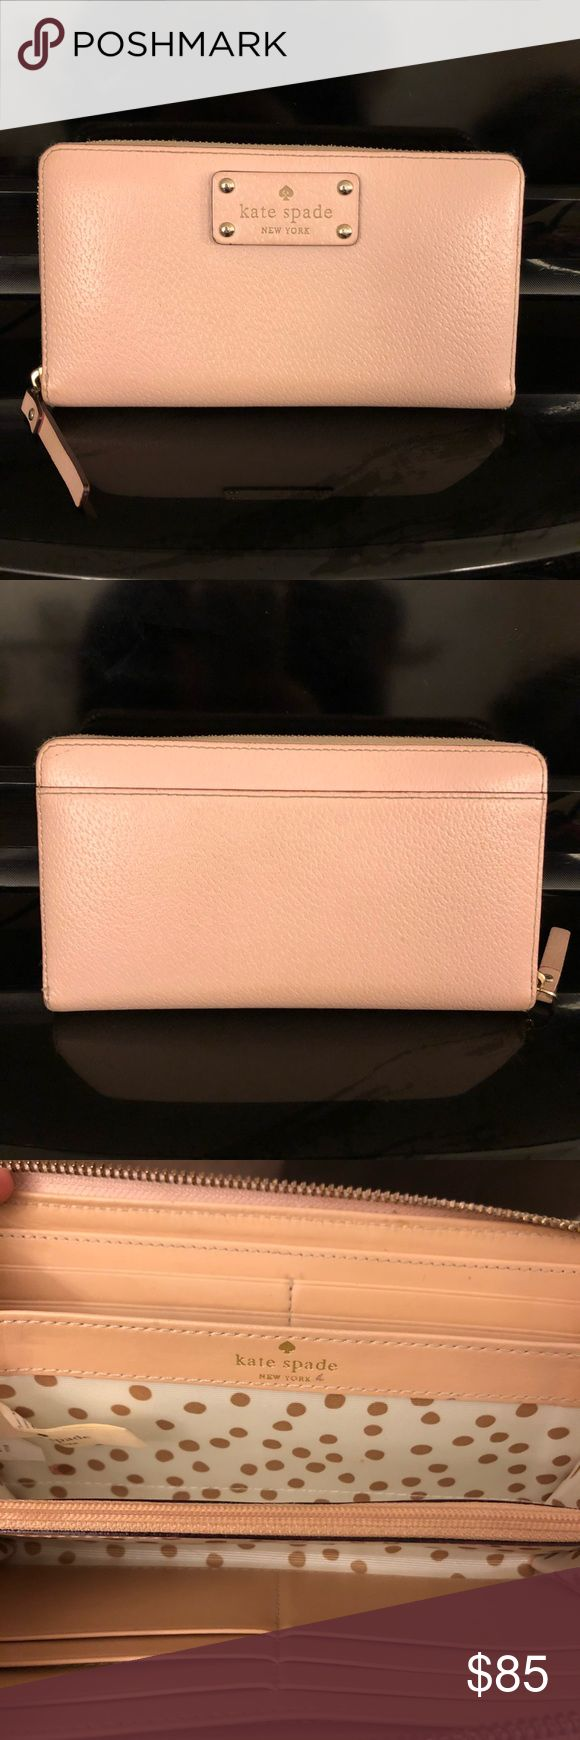 """Kate Spade Wellesley Neda Wallet Kate Spade Wellesley Neda wallet in light pink! This wallet measures 4"""" in height and 7.5"""" in length. Great condition! kate spade Bags Wallets"""